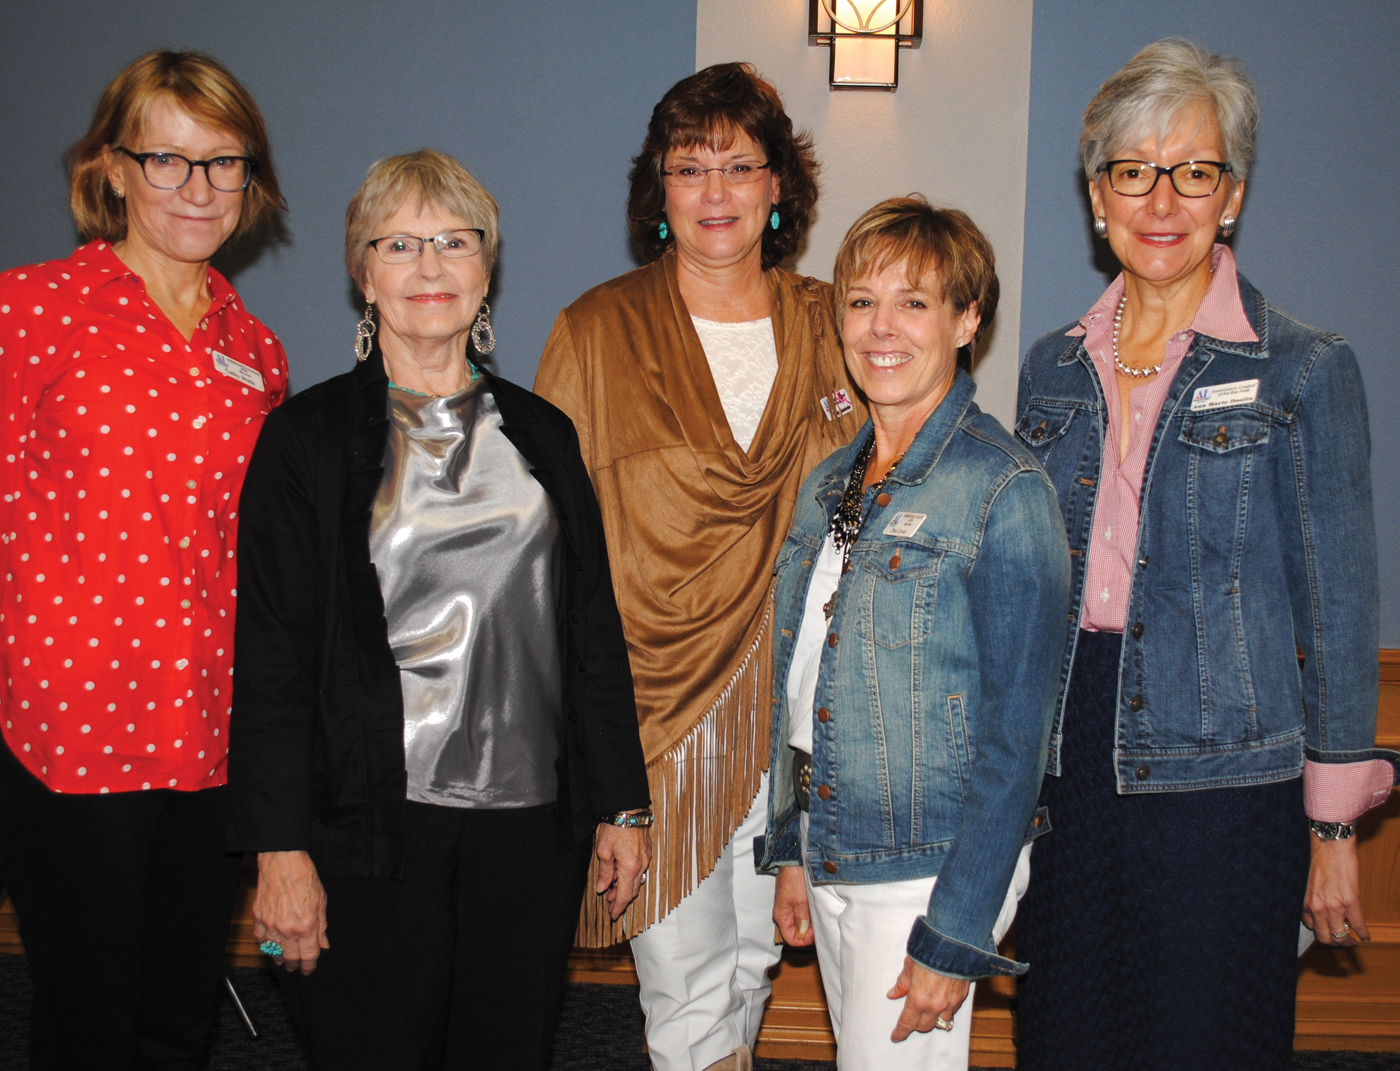 Dee Cover, fourth from left, is the new president of the Assistance League of the Bay Area. Other new officers joining her here for a photo are, from left, Secretary Cathy Wolfe, Vice Presidents Ellen Lancaster and Katy Bastedo and President-elect Ann-Marie Doolin. The treasurer, Barbara Weitenhagen, was absent.